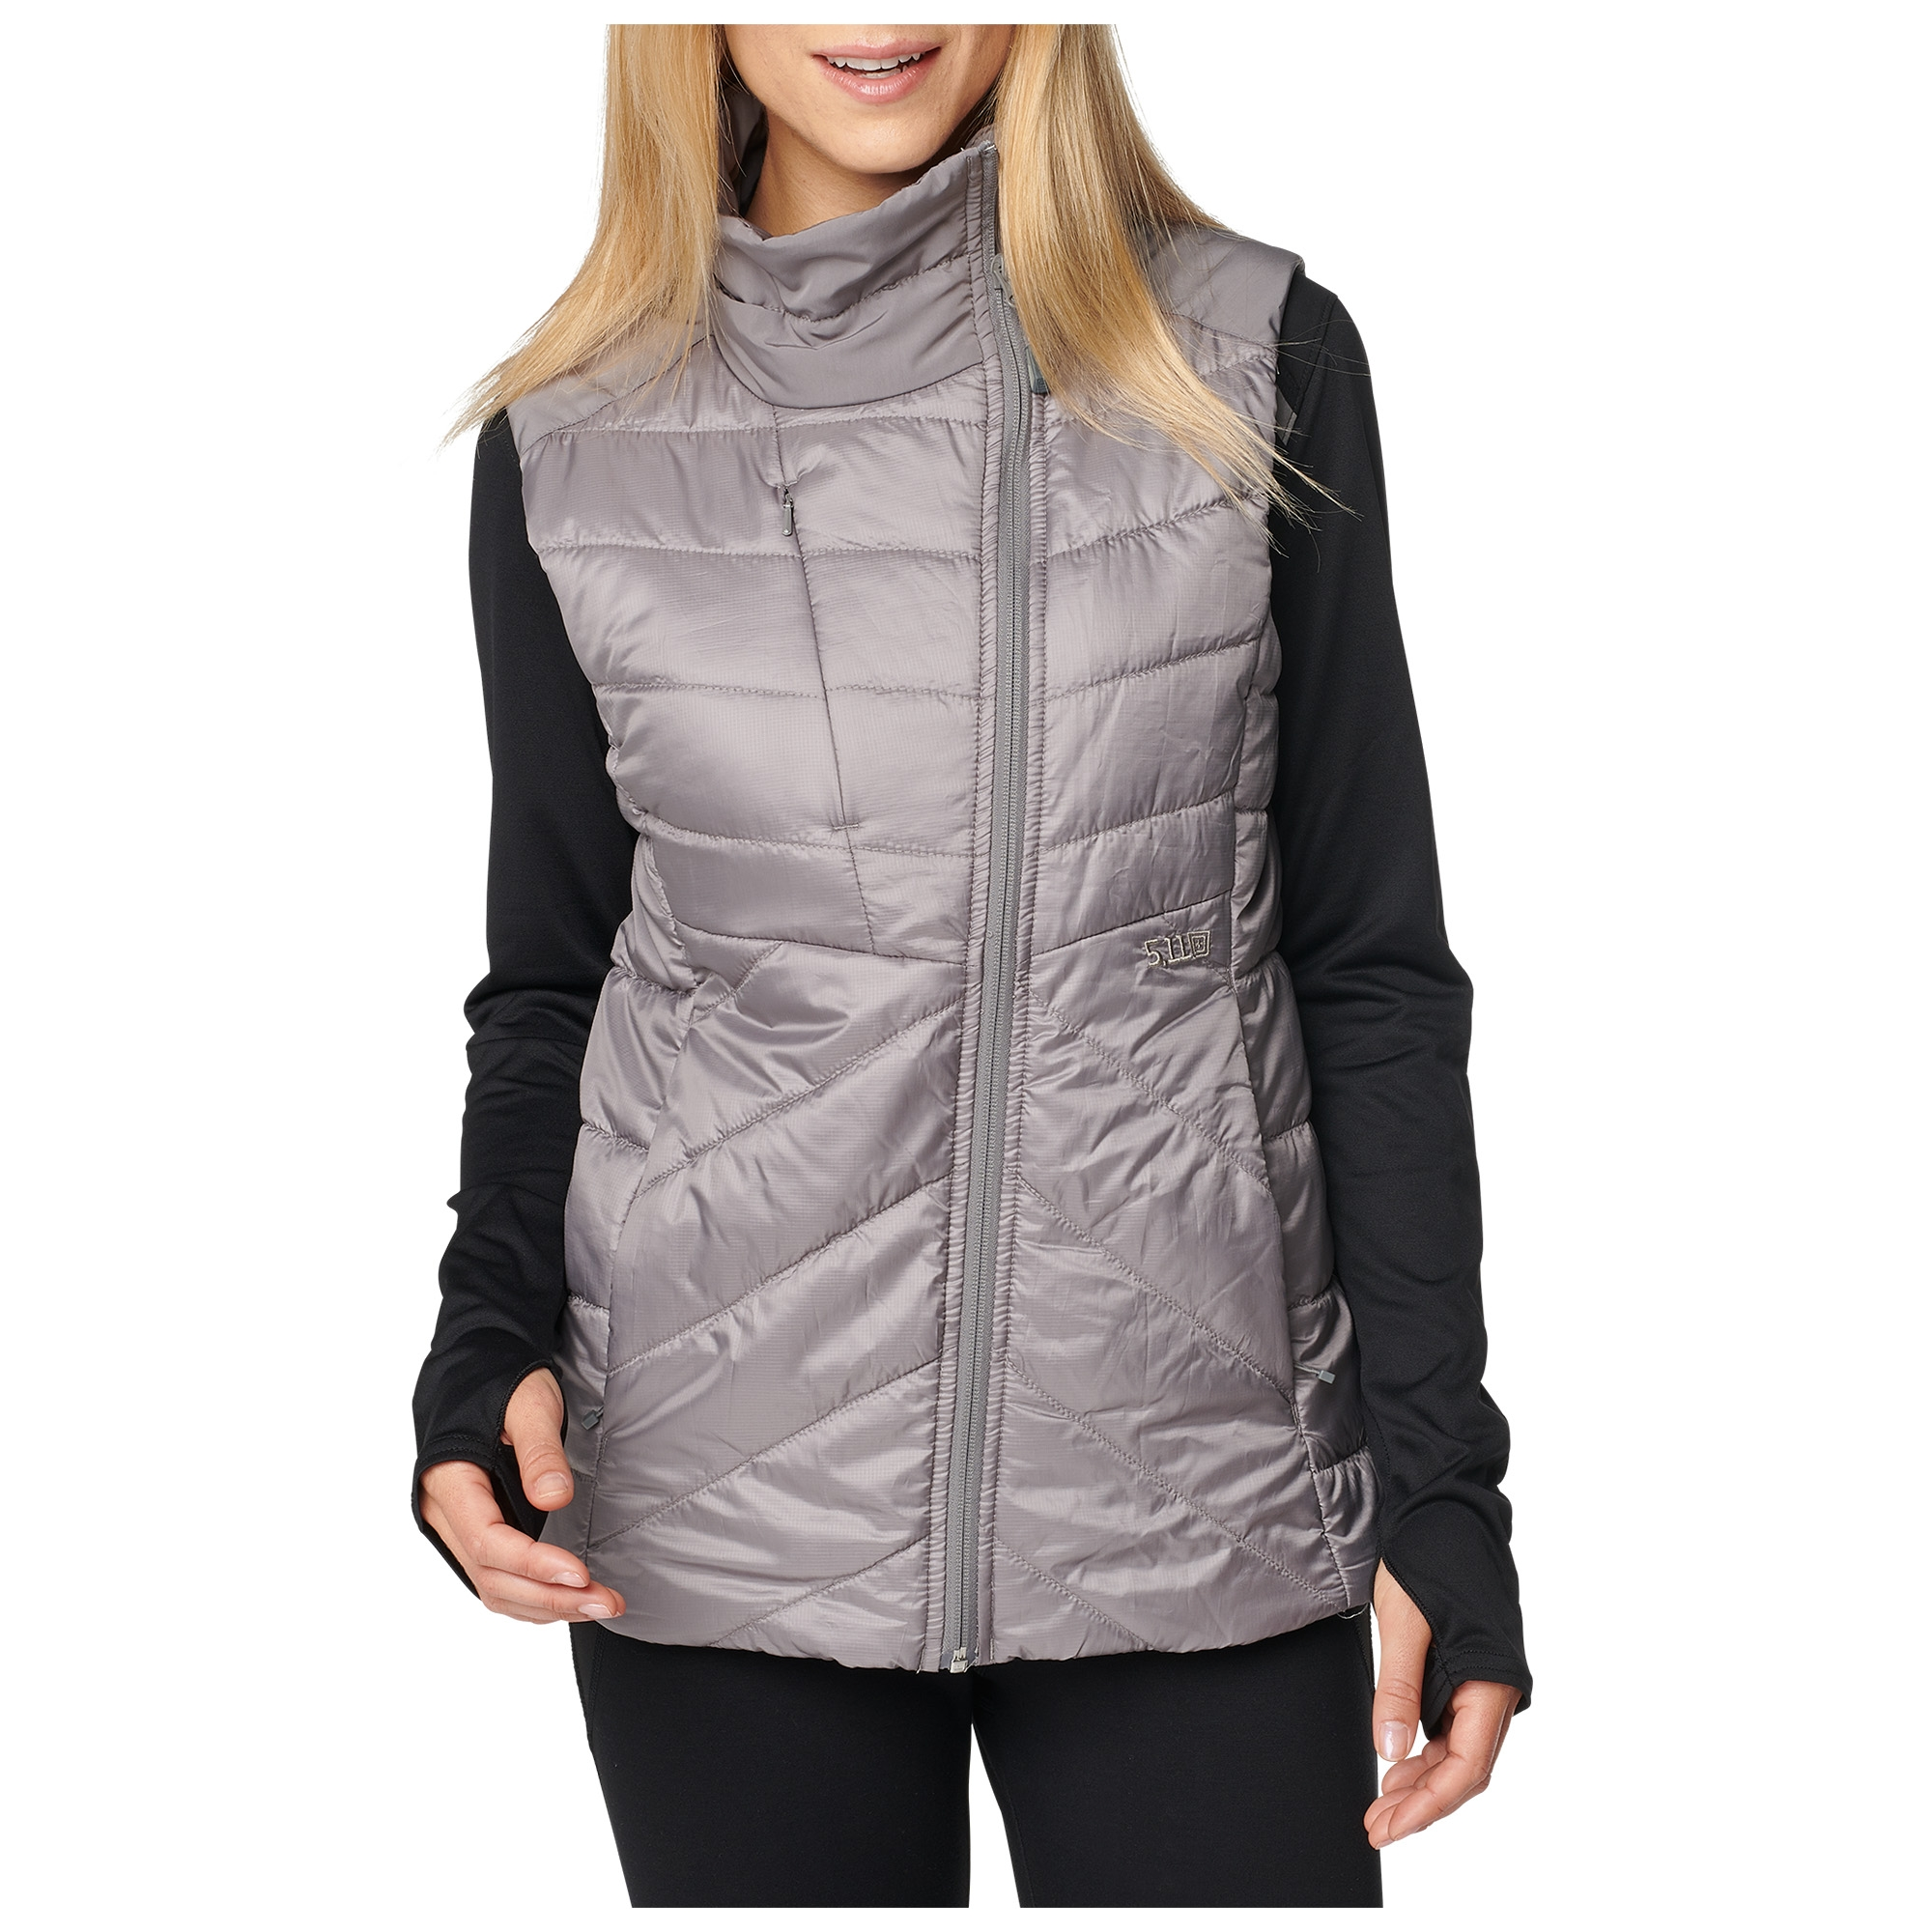 5.11 Tactical Women's Womens Peninsula Insulator Packable Vest (Grey), Size XS (CCW Concealed Carry)